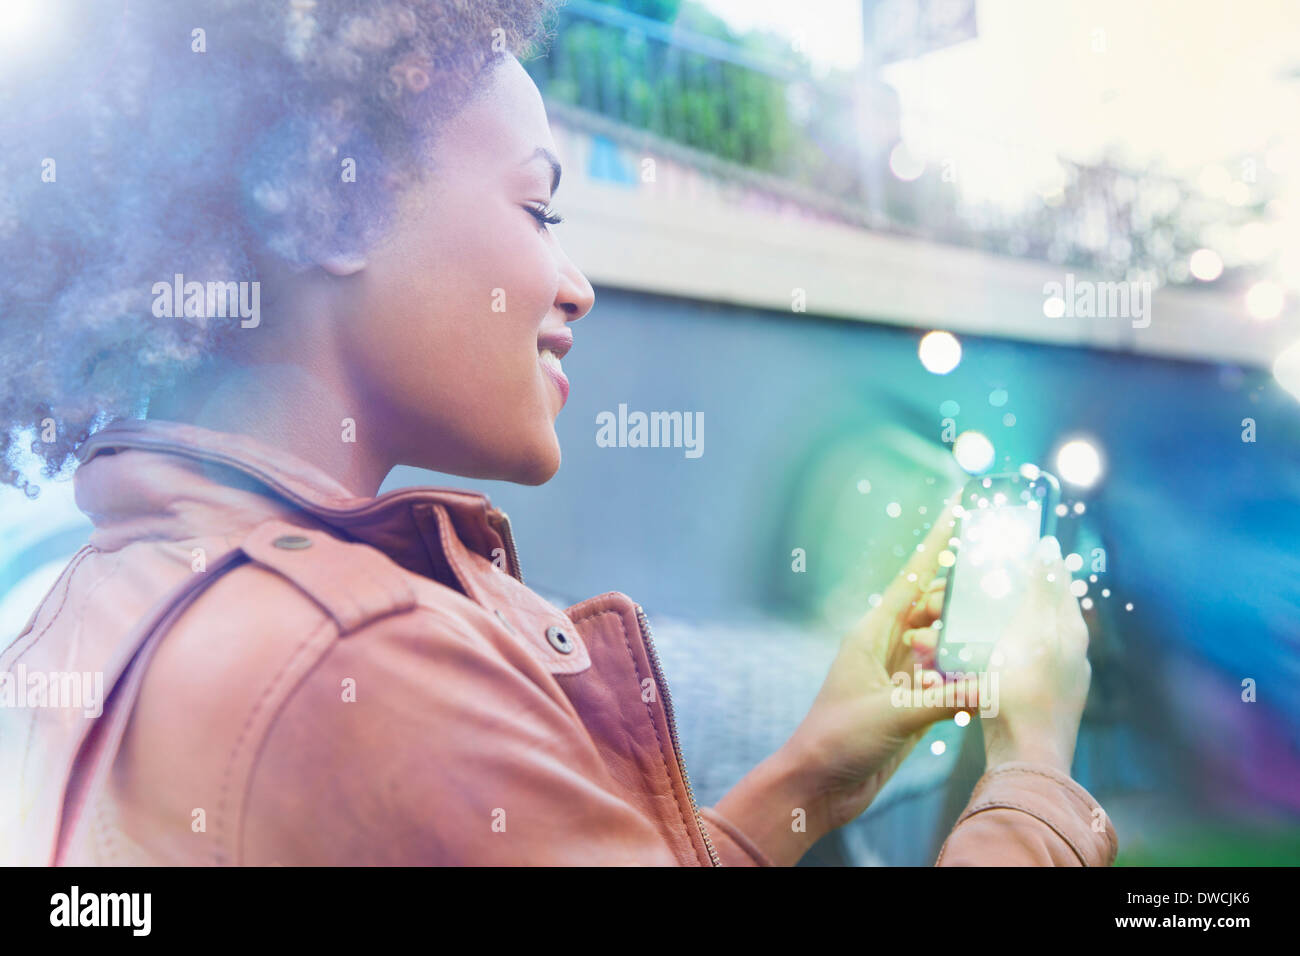 Young woman looking at smartphone avec feux lumineux sortant Photo Stock